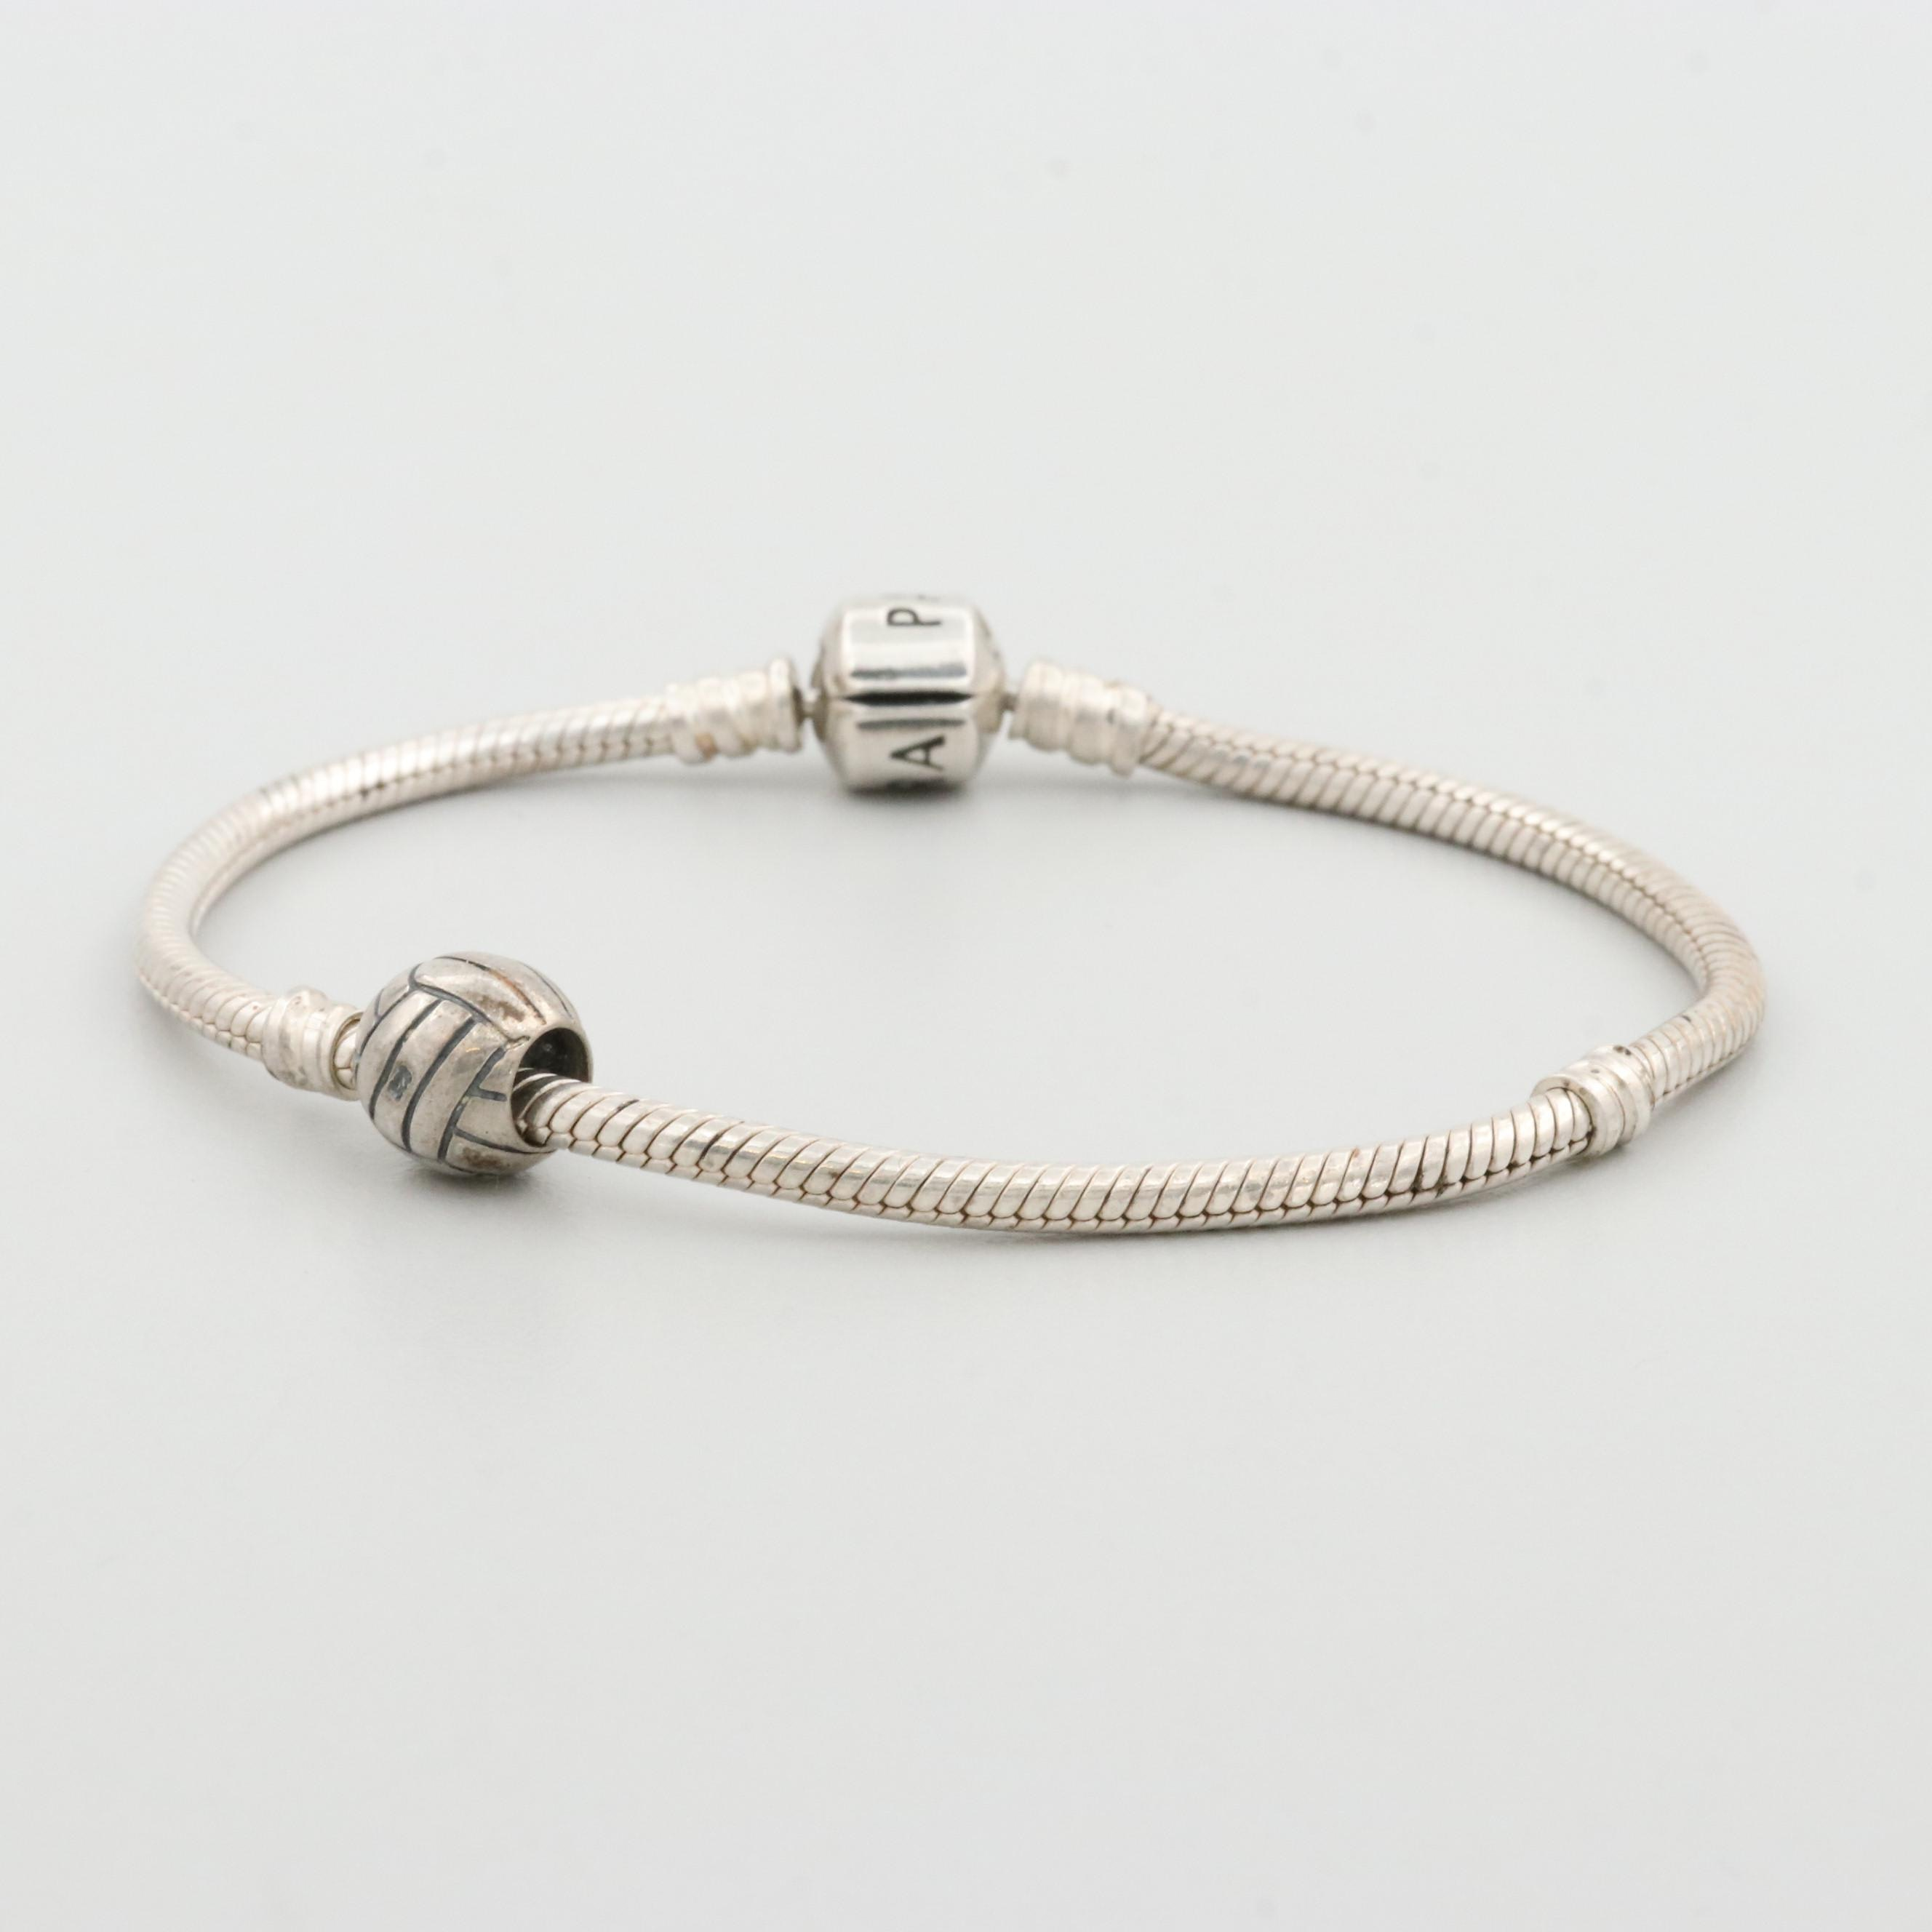 Pandora Sterling Silver Bracelet with Charm